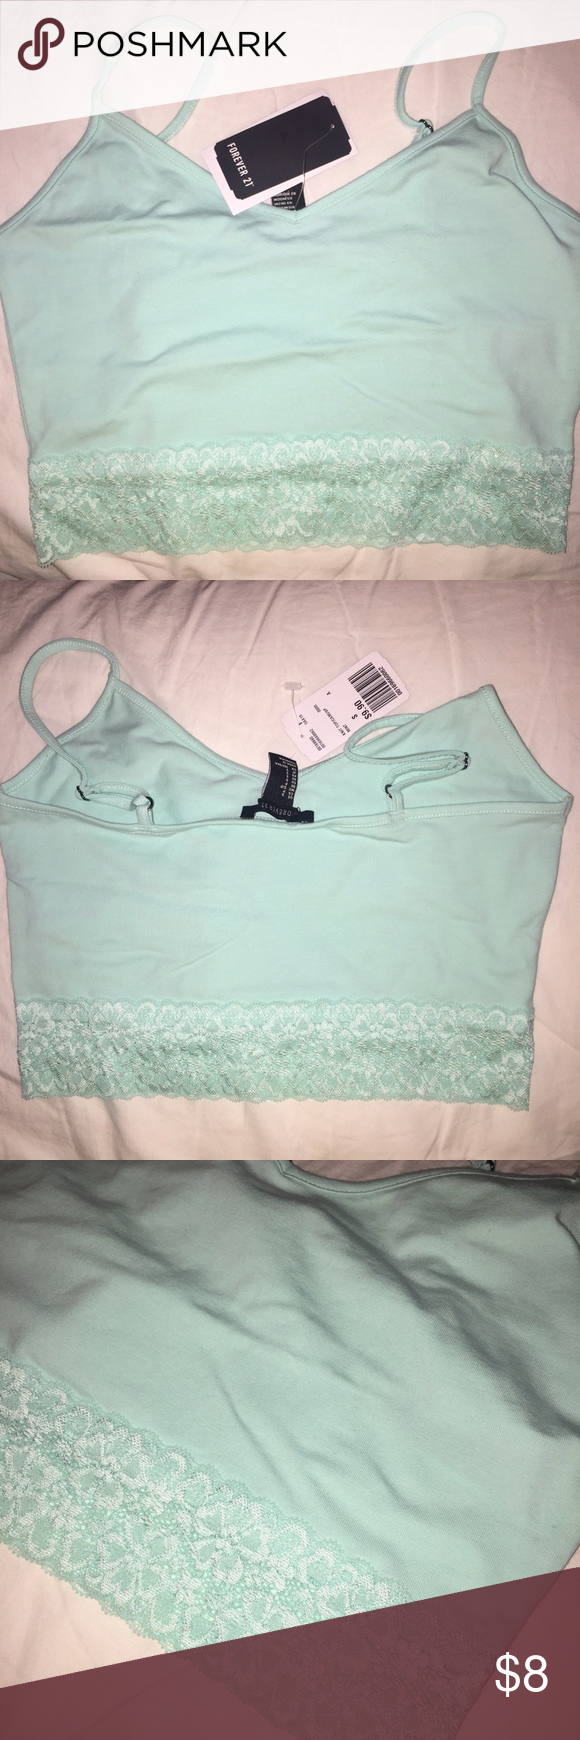 Bandeau Mint green bandeau with floral lace at the bottom. Never been worn Forever 21 Intimates & Sleepwear Bandeaus